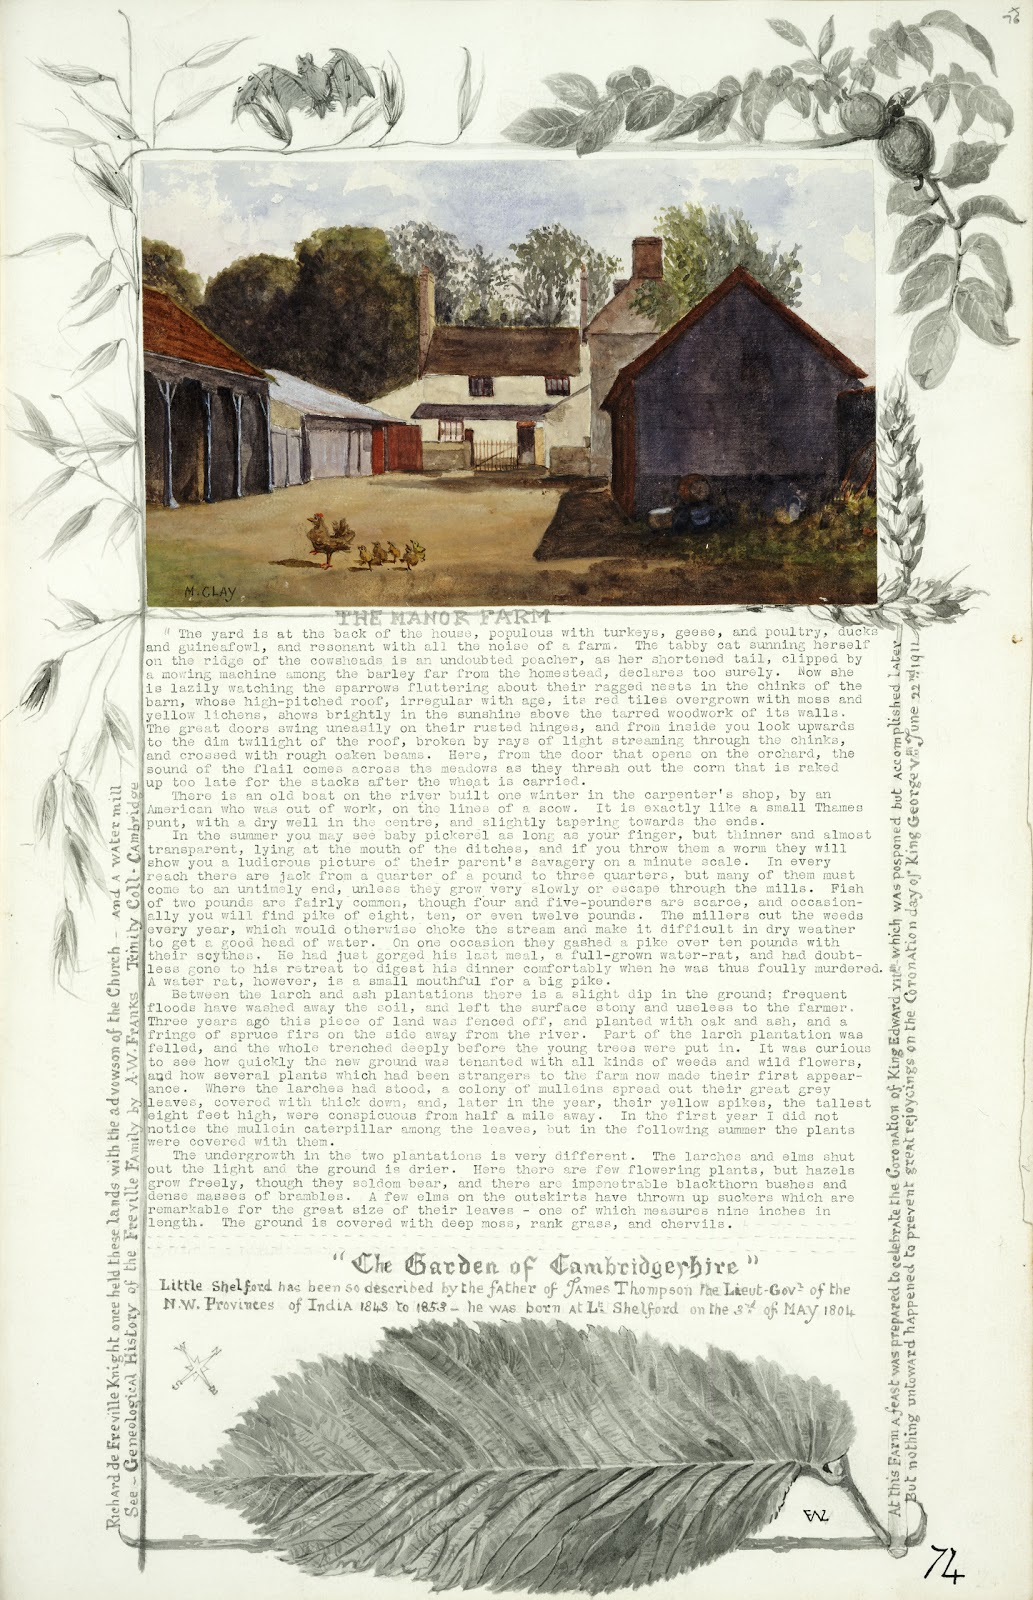 A Record of Shelford Parva by Fanny Wale P74 fo. 76, page 74: Coloured watercolour painting of the Manor Farm with description. The border includes wheat, a bat, corn and leaves, black and white watercolour. Note that Little Shelford was described as 'The garden of Cambridgeshire' and large watercolour of a leaf. [not in photographic copy]